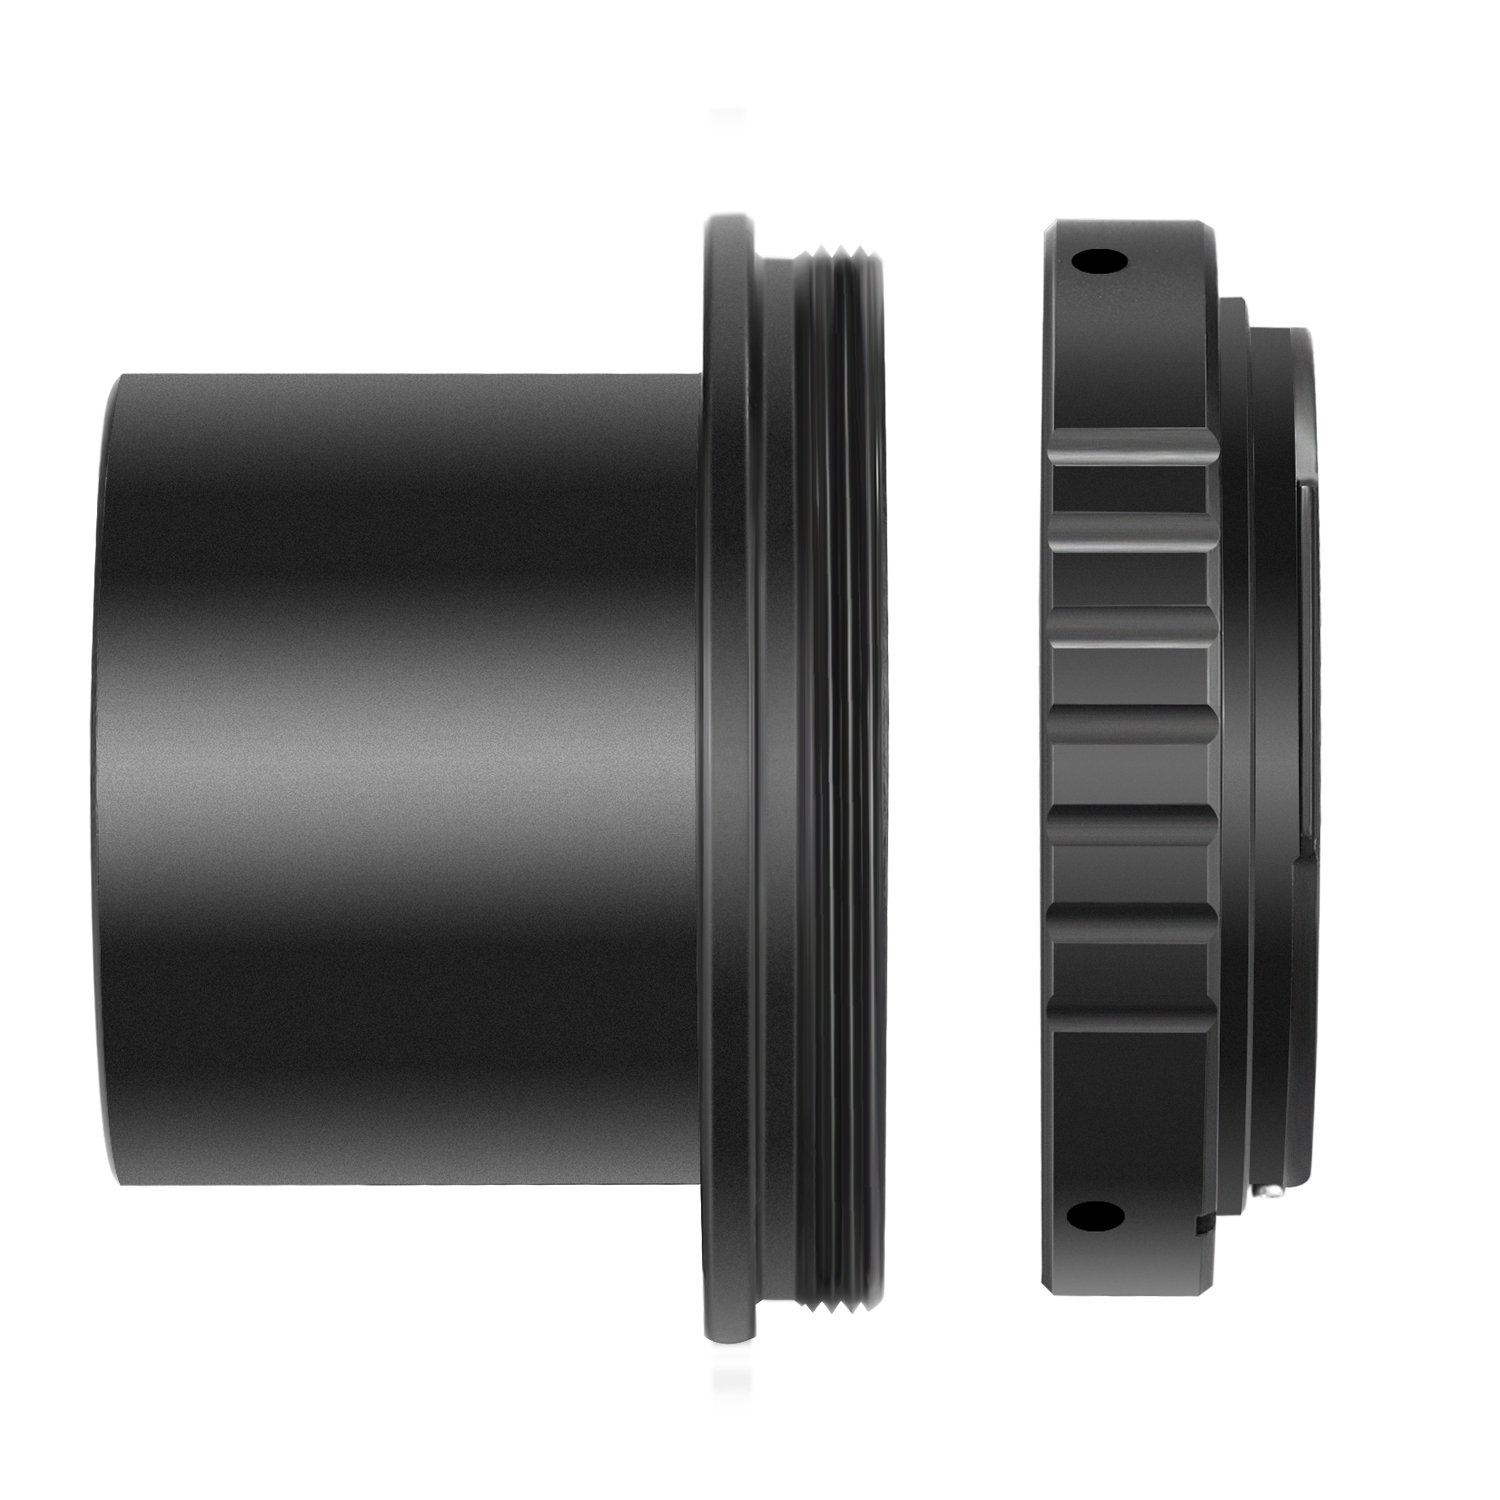 Neewer T-Ring and M42 to 1.25 inch Telescope Adapter (T-Mount) for Canon Eos 5d, 5d Mark II, 50d, 60d, 20d, 30d, 40d, 350d, 400d, 450d, 500d, 550d, 600d, 1100d, Digital Rebel T4i, T3i, T2i and More 10093359